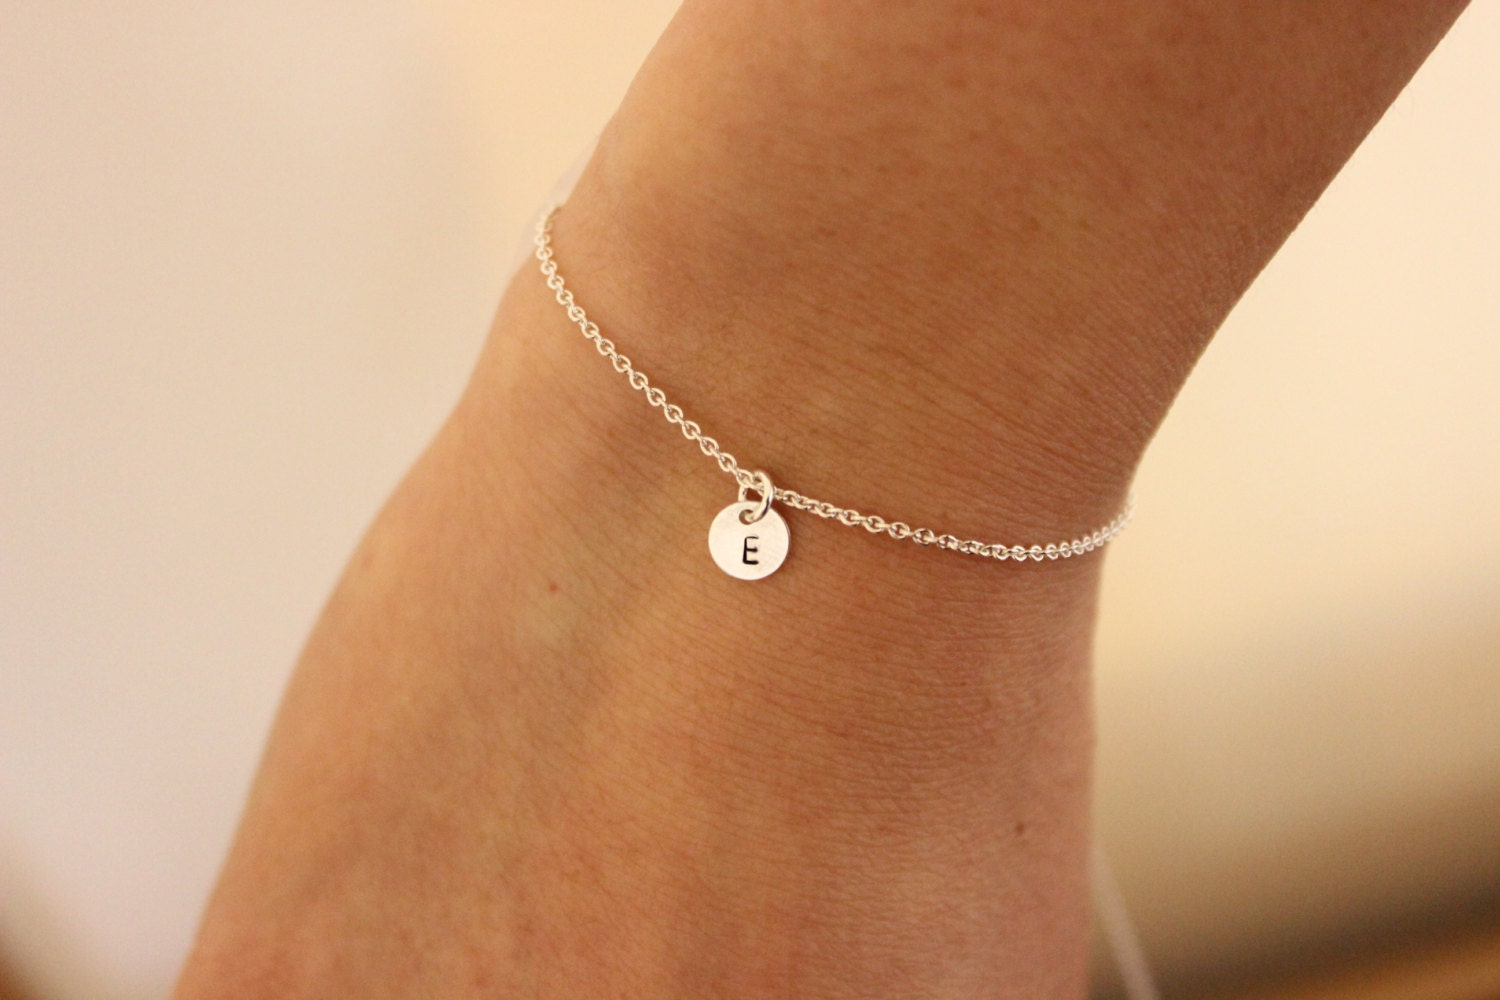 jewelry store heart bracelet charm silver sterling dainty small simple